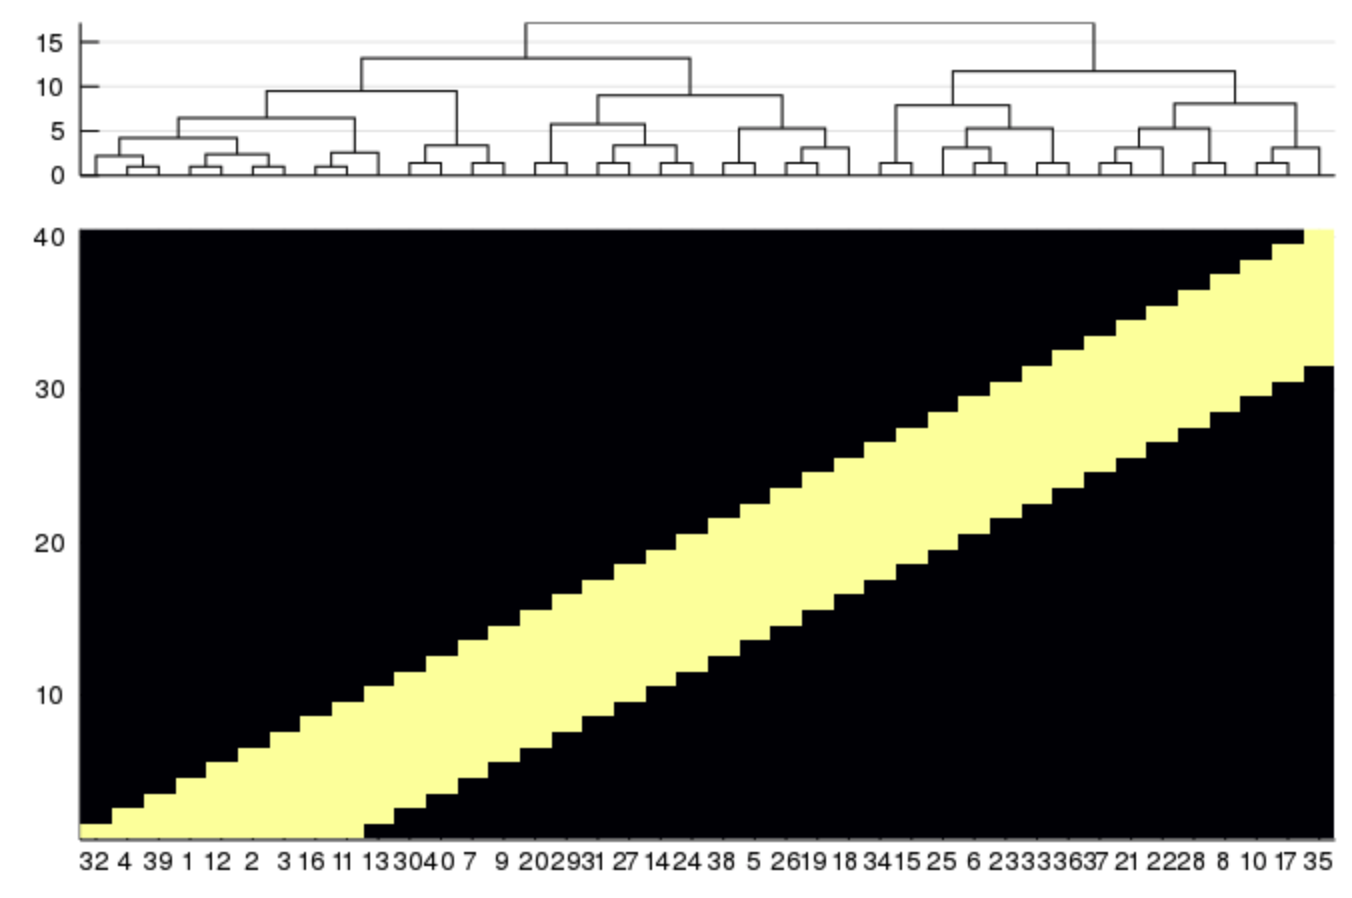 heatmap dendrogram optimal